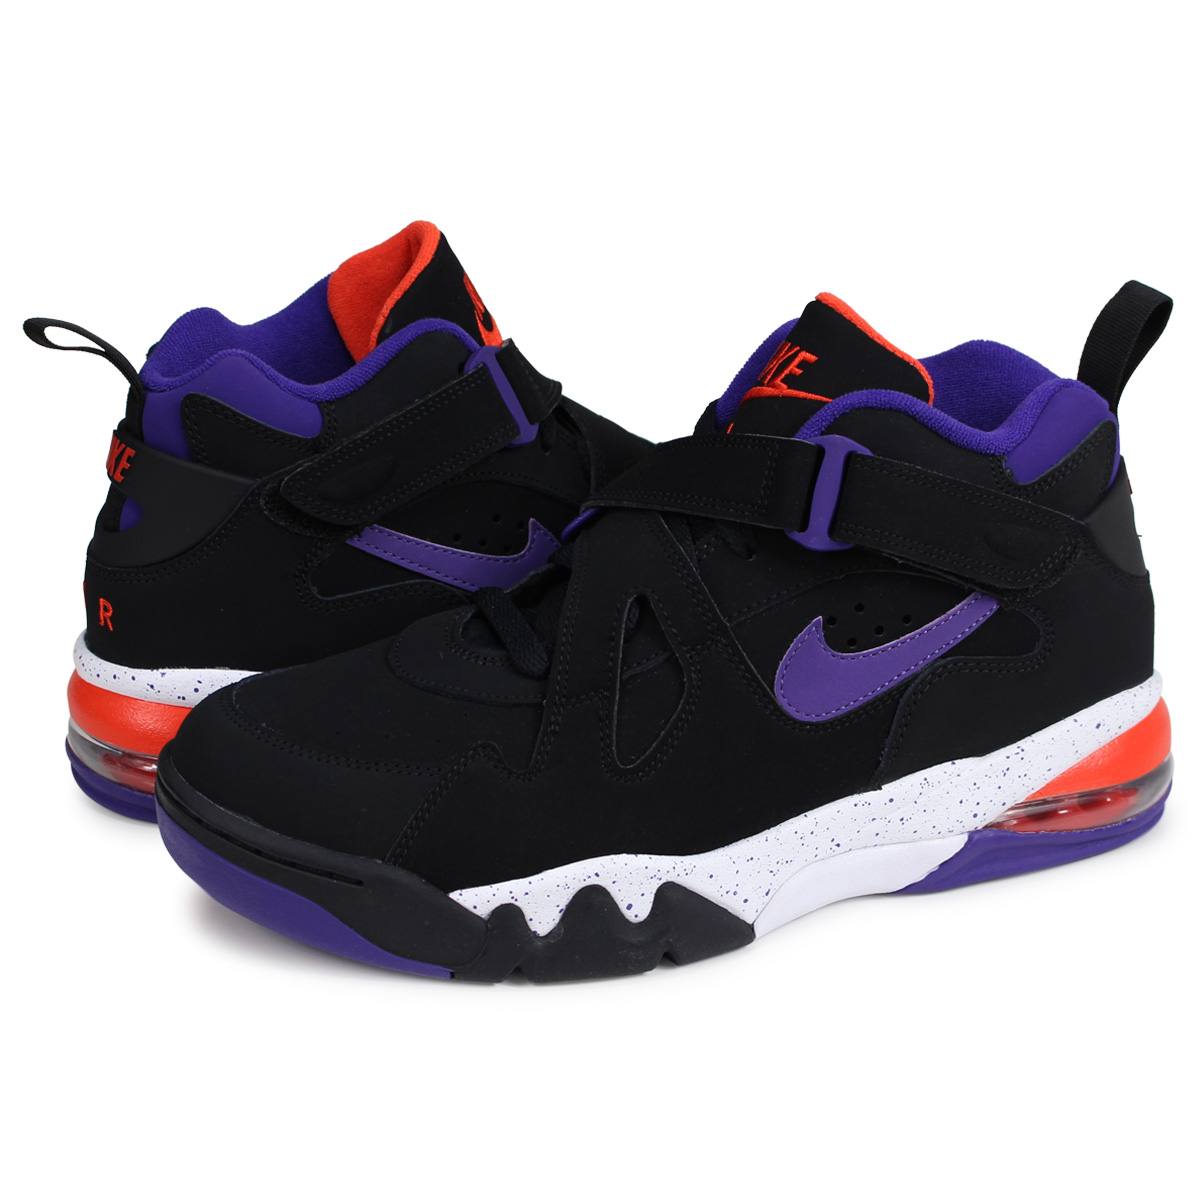 buy popular 32afe e2391 Nike NIKE air force max sneakers men AIR FORCE MAX CB black black AJ7922-002   load planned Shinnyu load in reservation product 4 3 containing